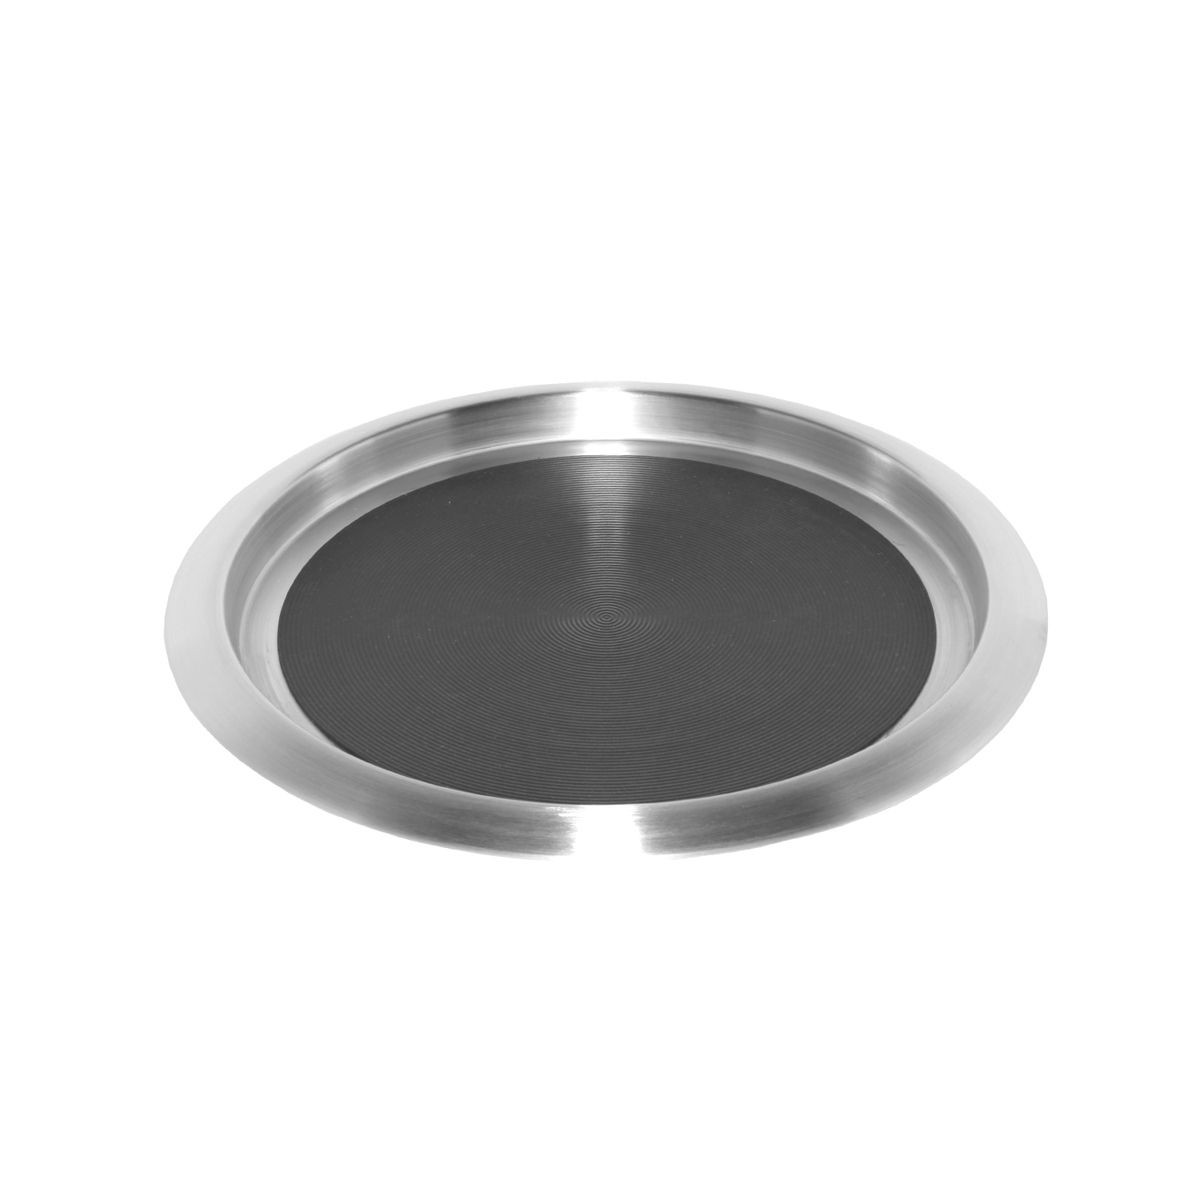 Service Ideas TR1412SR Non-Slip Tray with Solid Rubber Insert, Stainless 14""